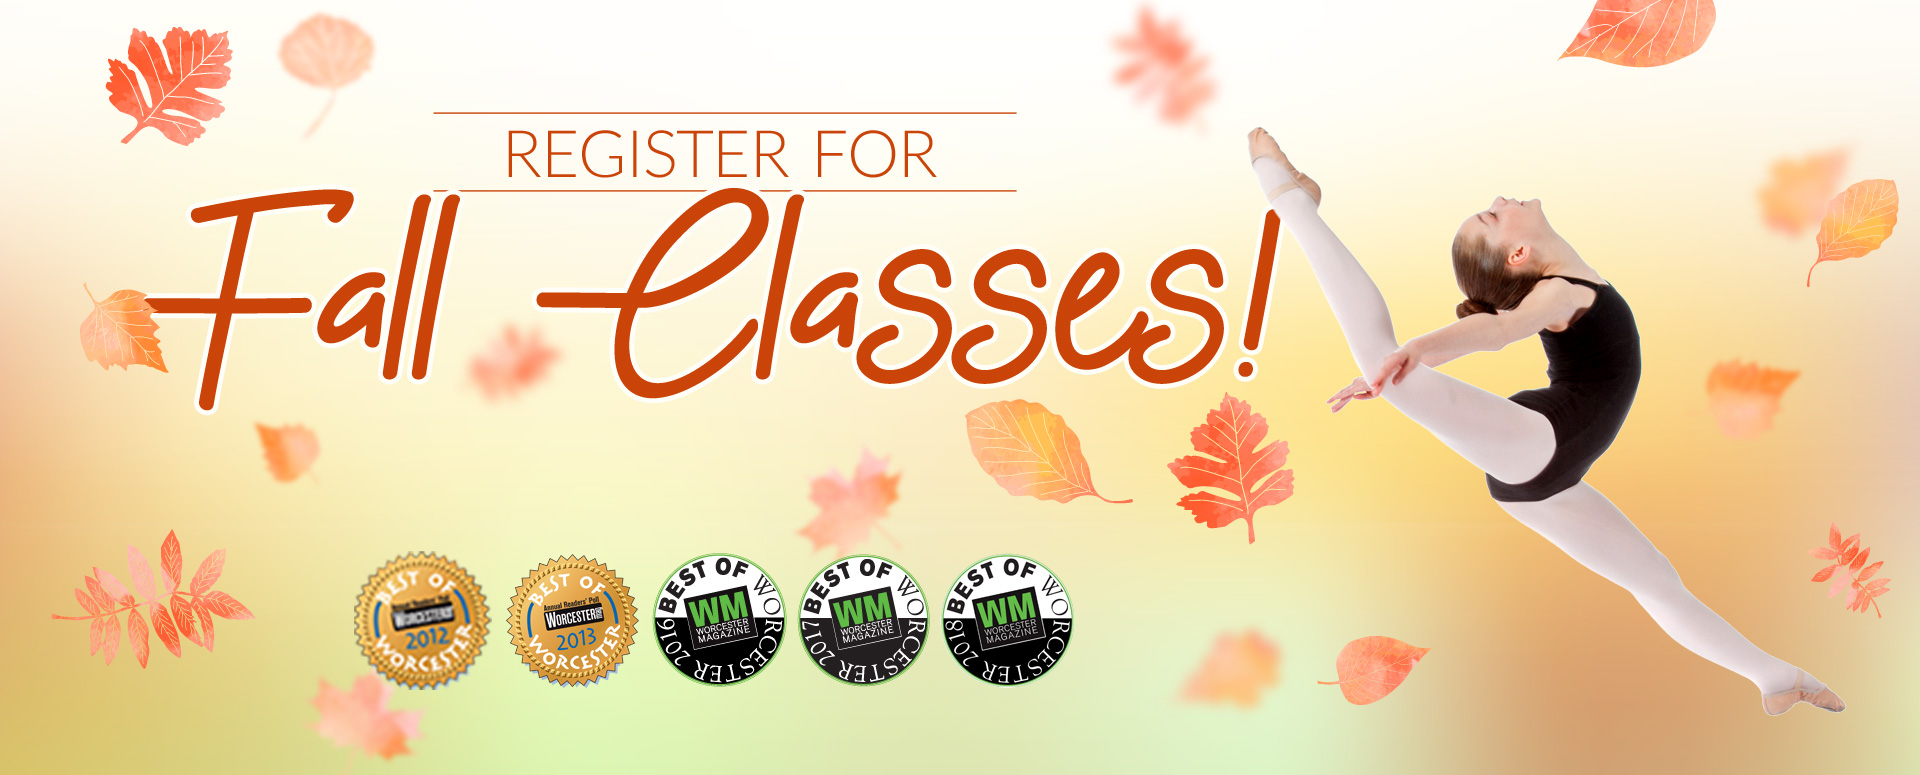 Register for fall classes at the Best of Worcester 5 times studio